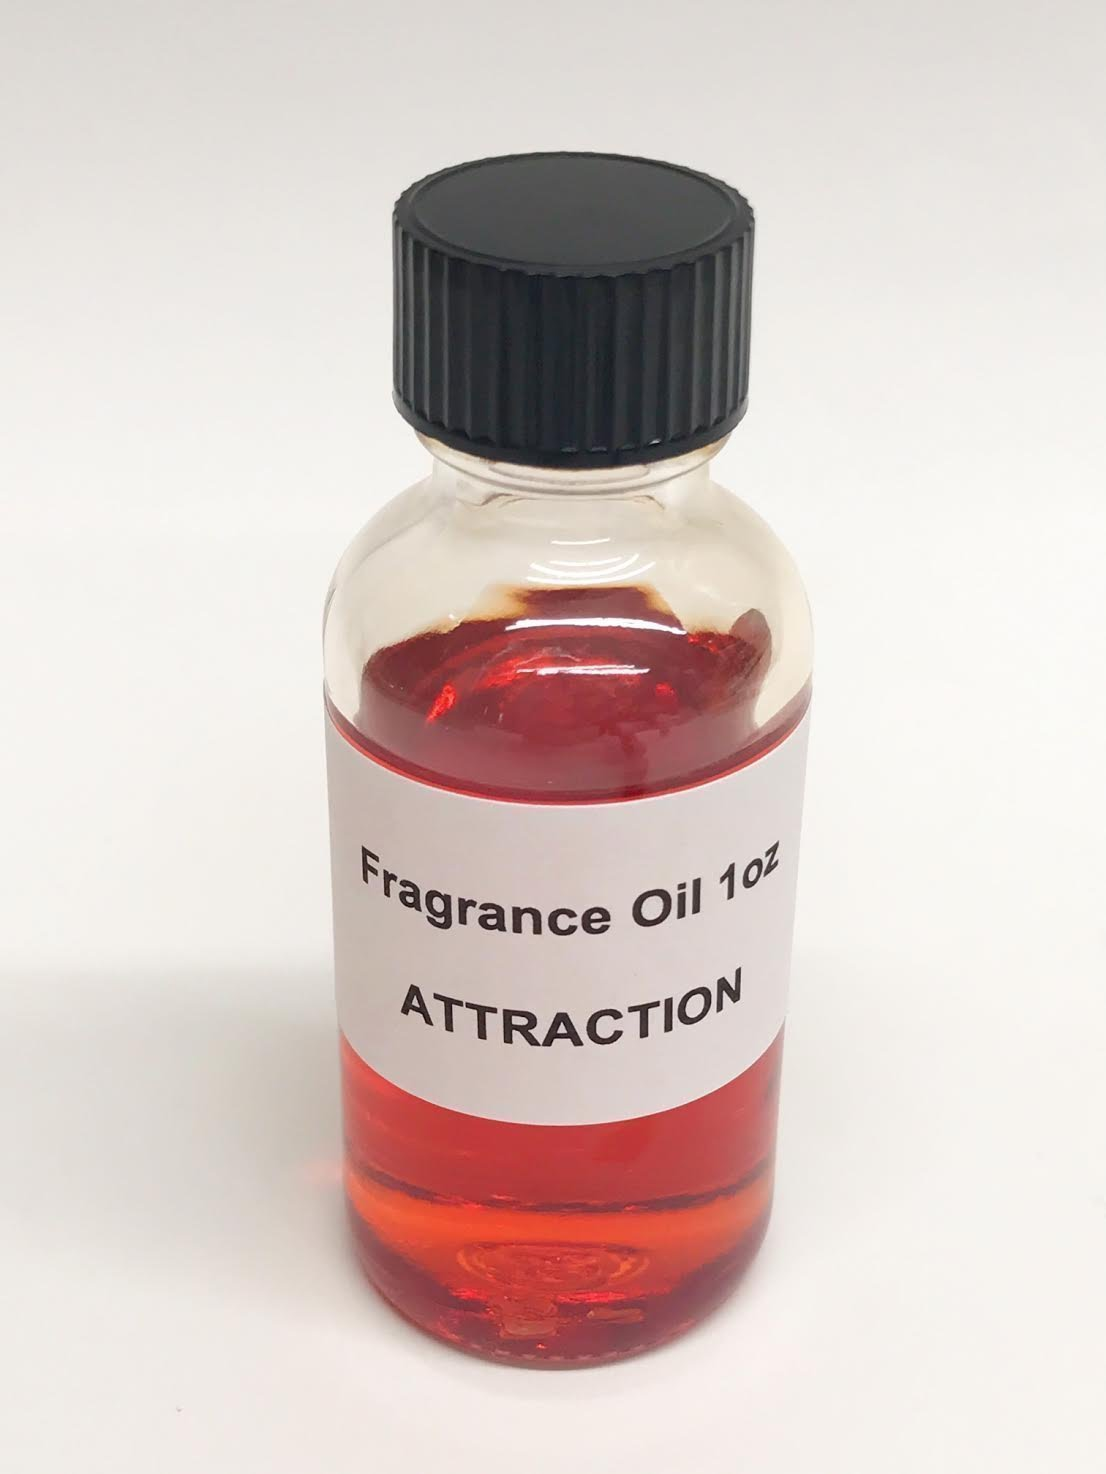 ATTRACTION Fragrance Oil 1oz Perfume Body Oil Similar to Orchid Soleil Made in the USA